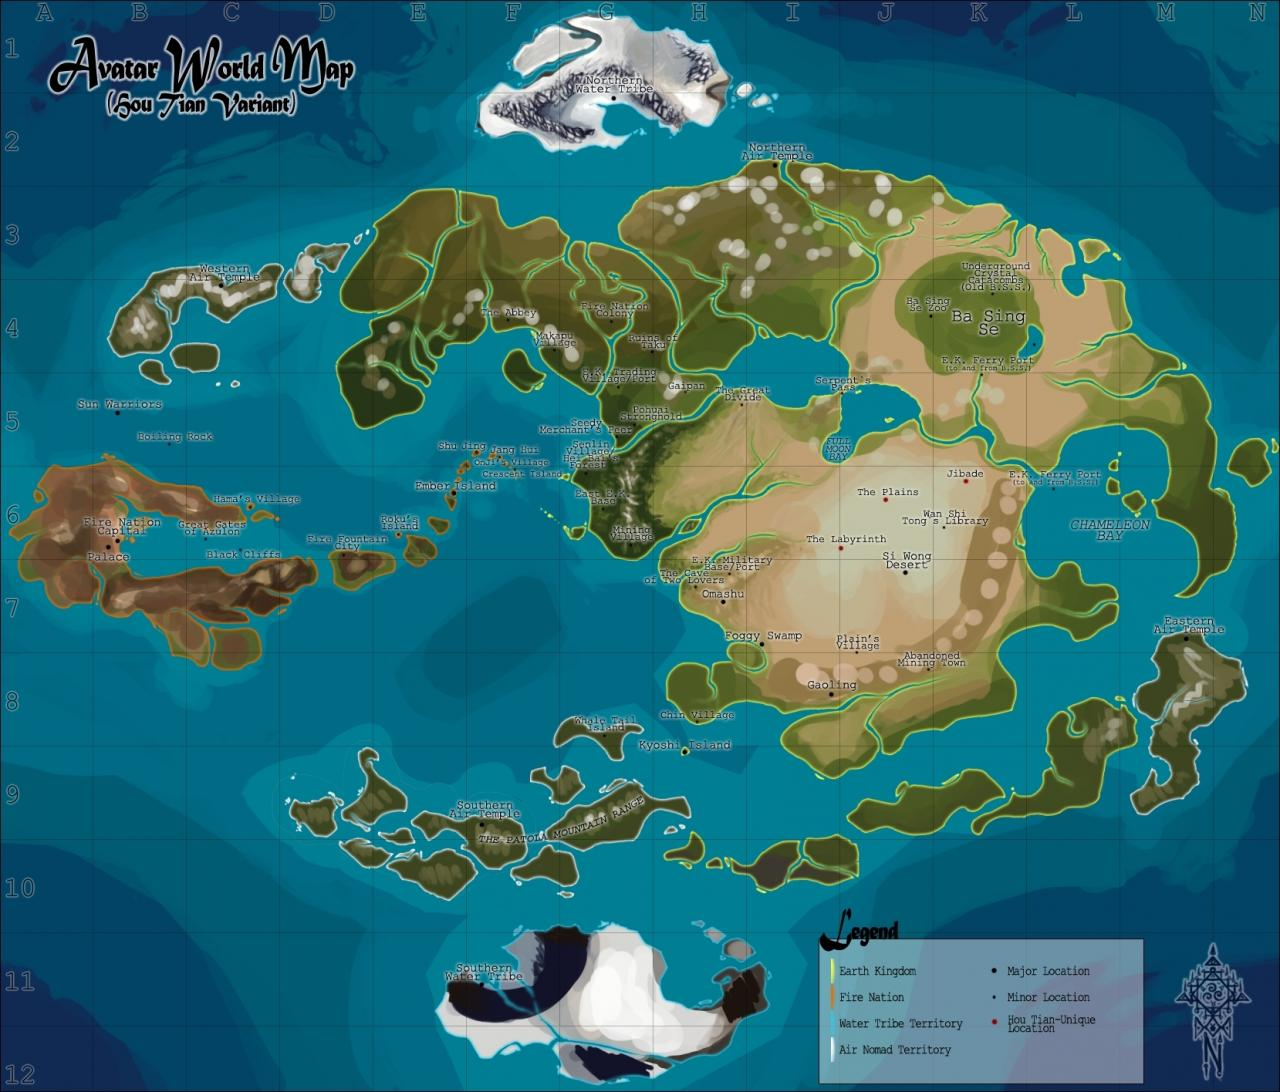 Avatar World Map I am planning on building